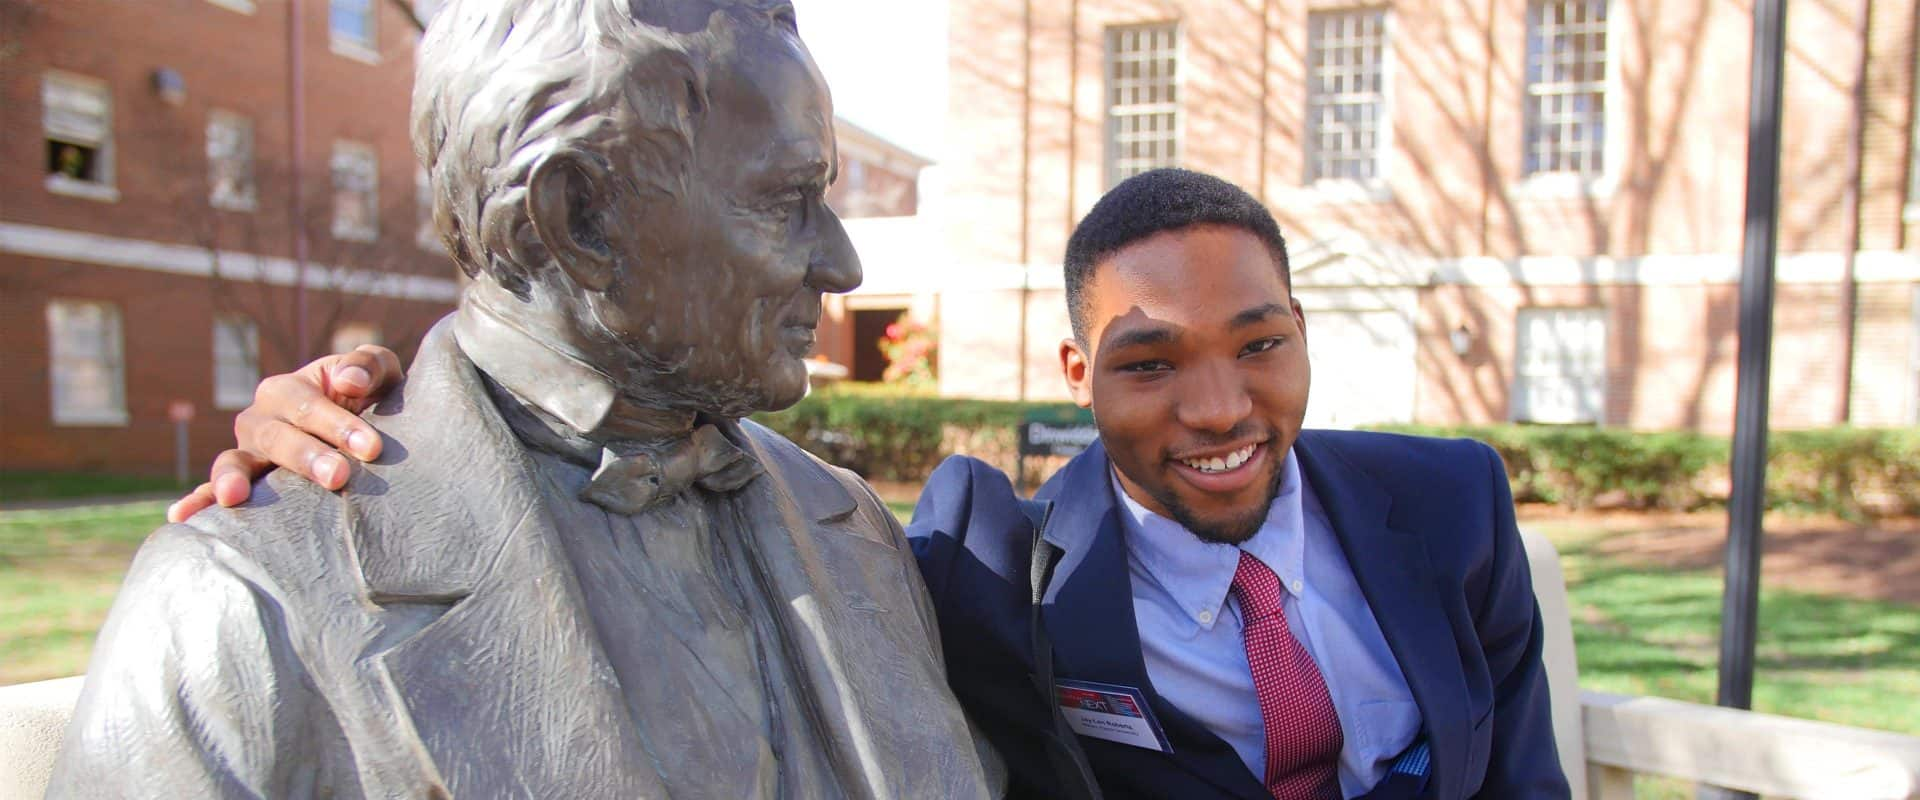 WPU Student, Jay Len with Mr. Peace statue.